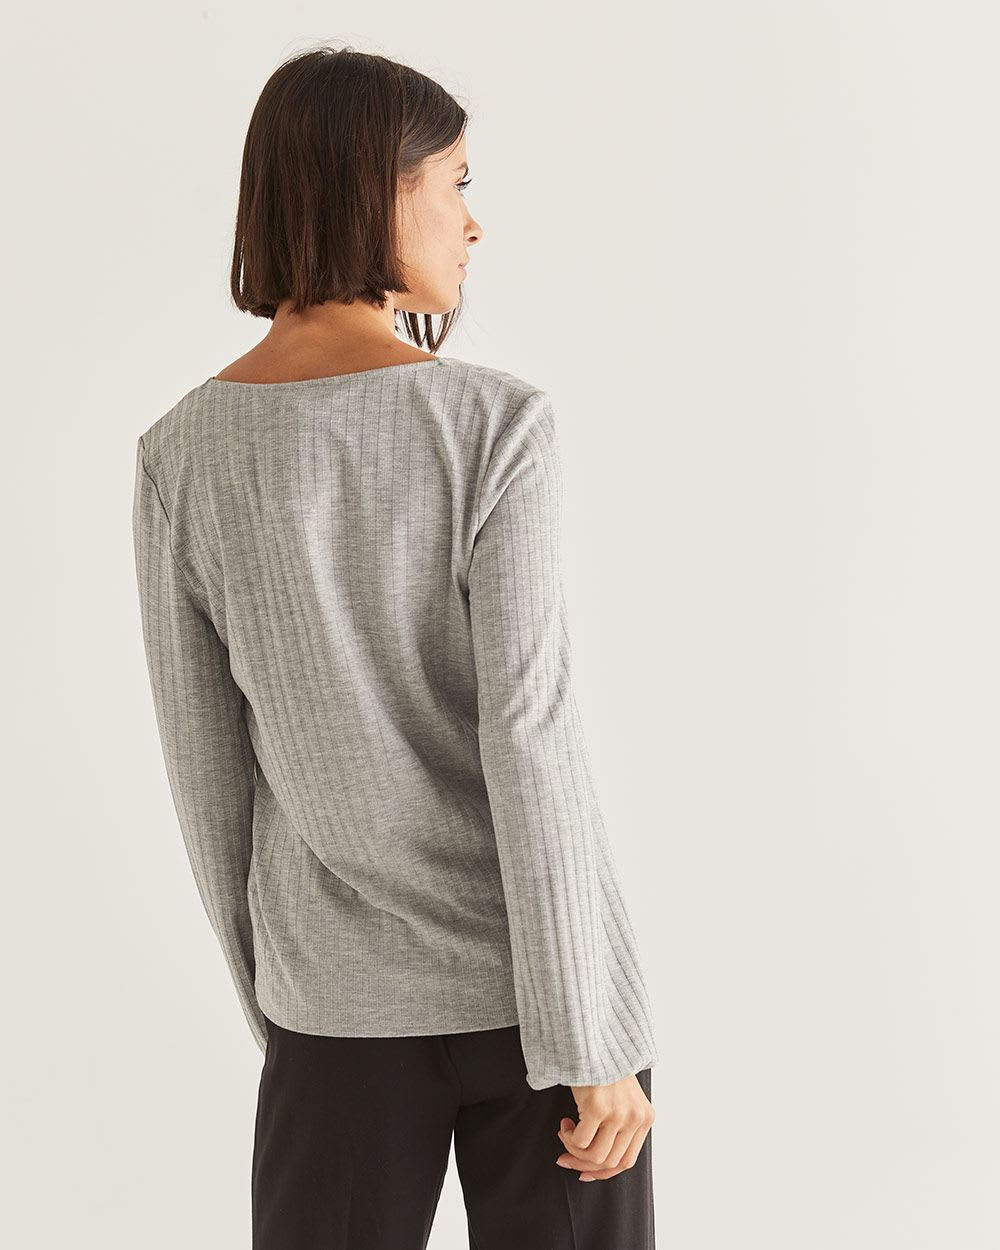 Bubble Sleeve Rib Knit Top - Petite